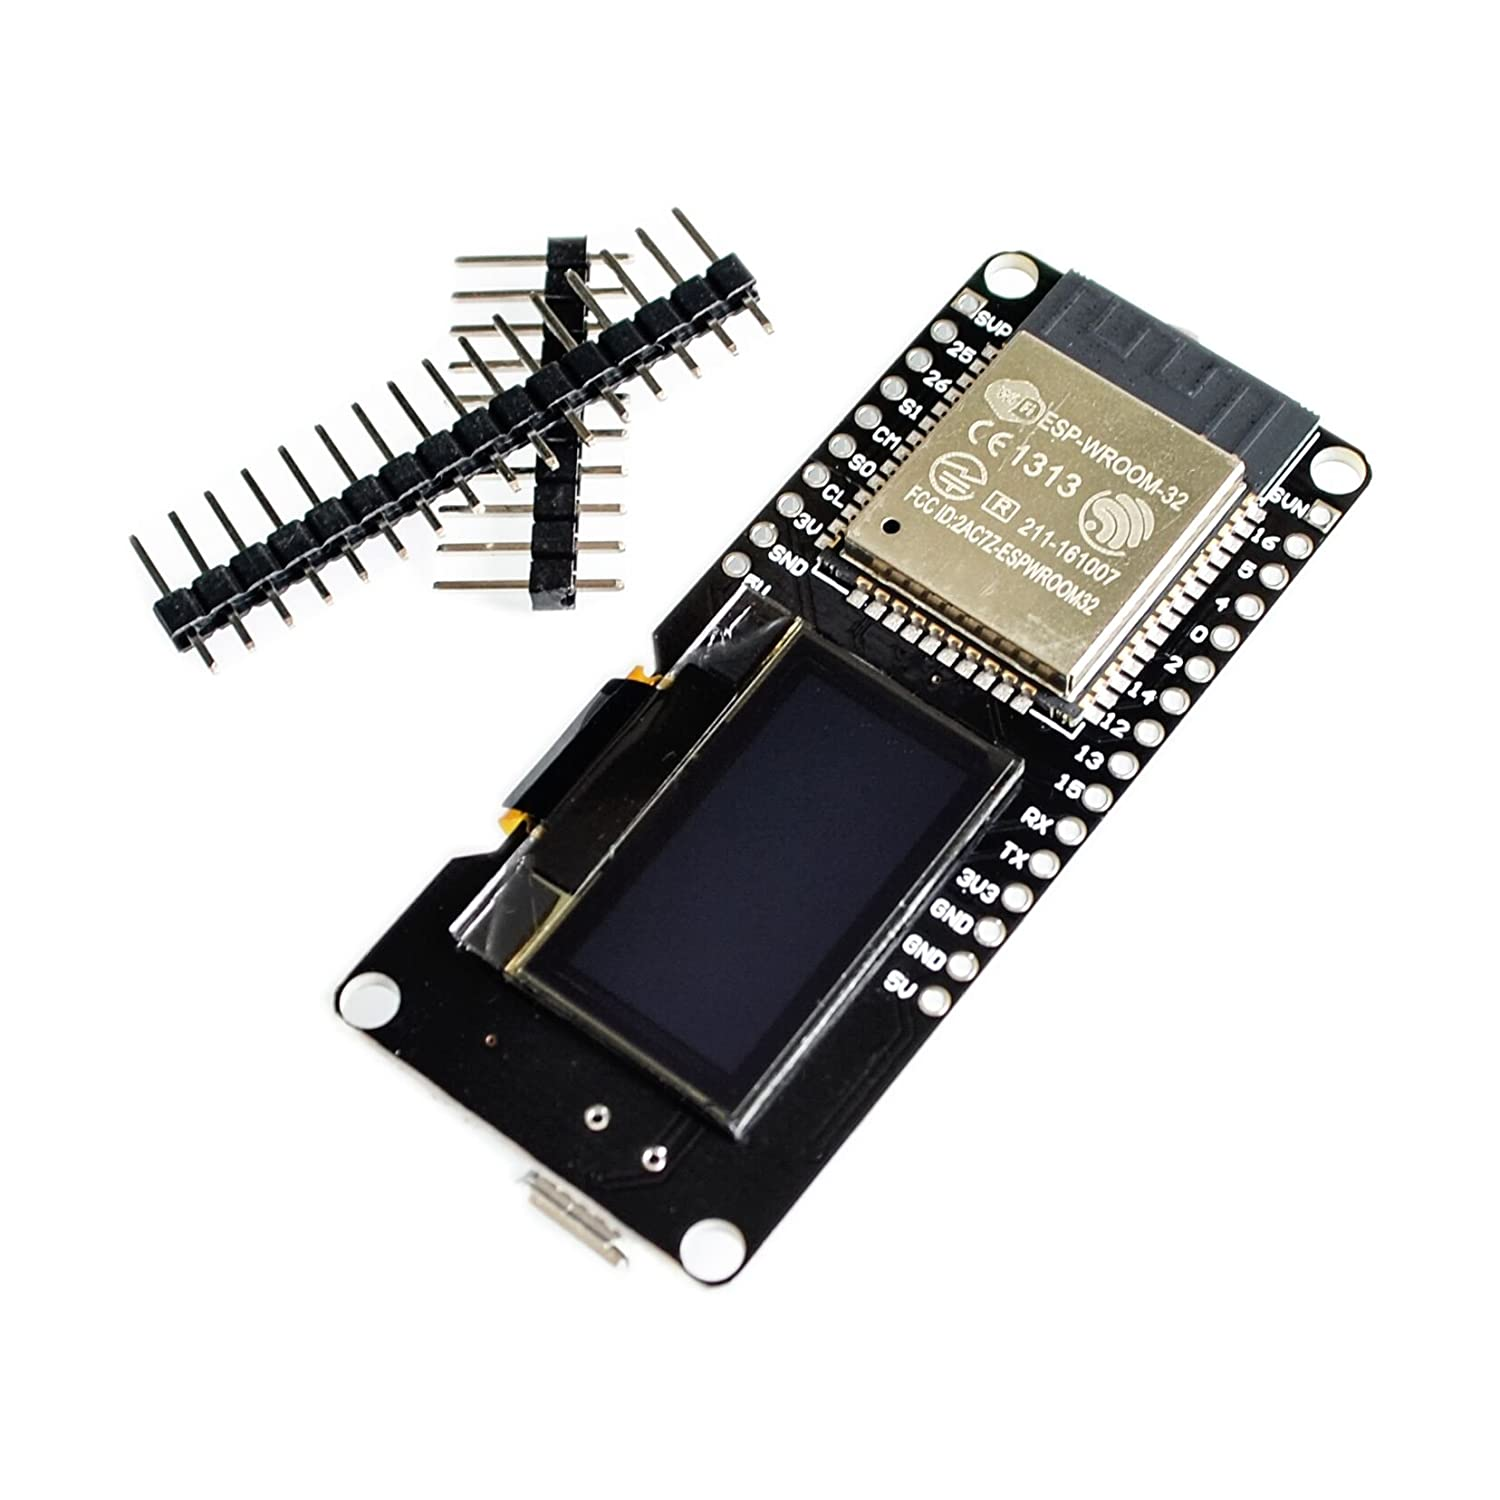 LIGHTHINKING ESP32 OLED WiFi Modules+ Bluetooth Dual ESP-32 ESP-32S ESP8266 &OLED ESP32 OLED for Arduino: Amazon.com: Industrial & Scientific